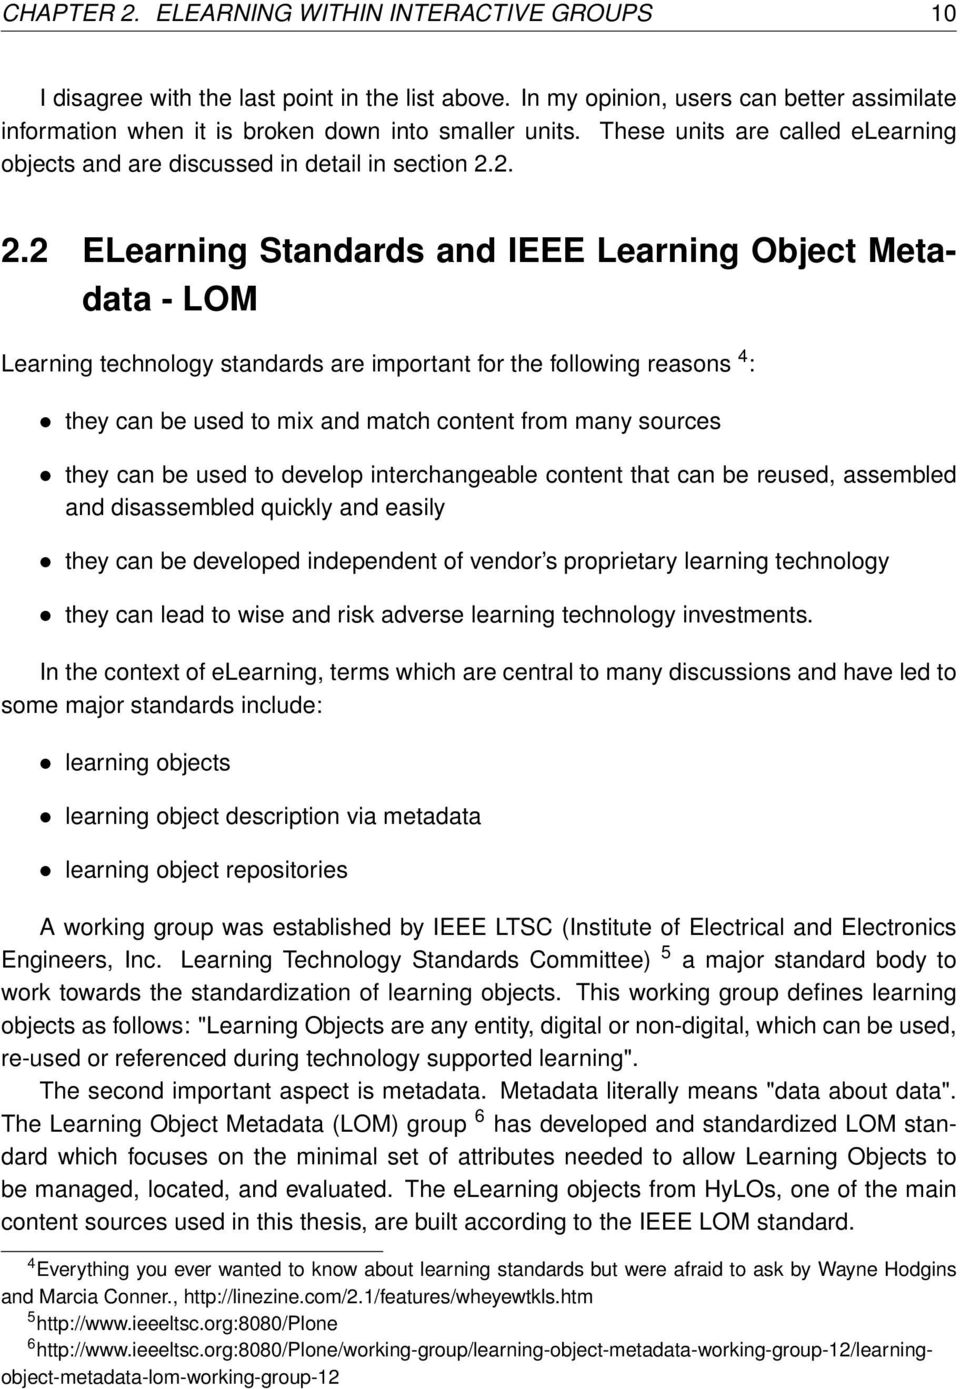 2. 2.2 ELearning Standards and IEEE Learning Object Metadata - LOM Learning technology standards are important for the following reasons 4 : they can be used to mix and match content from many